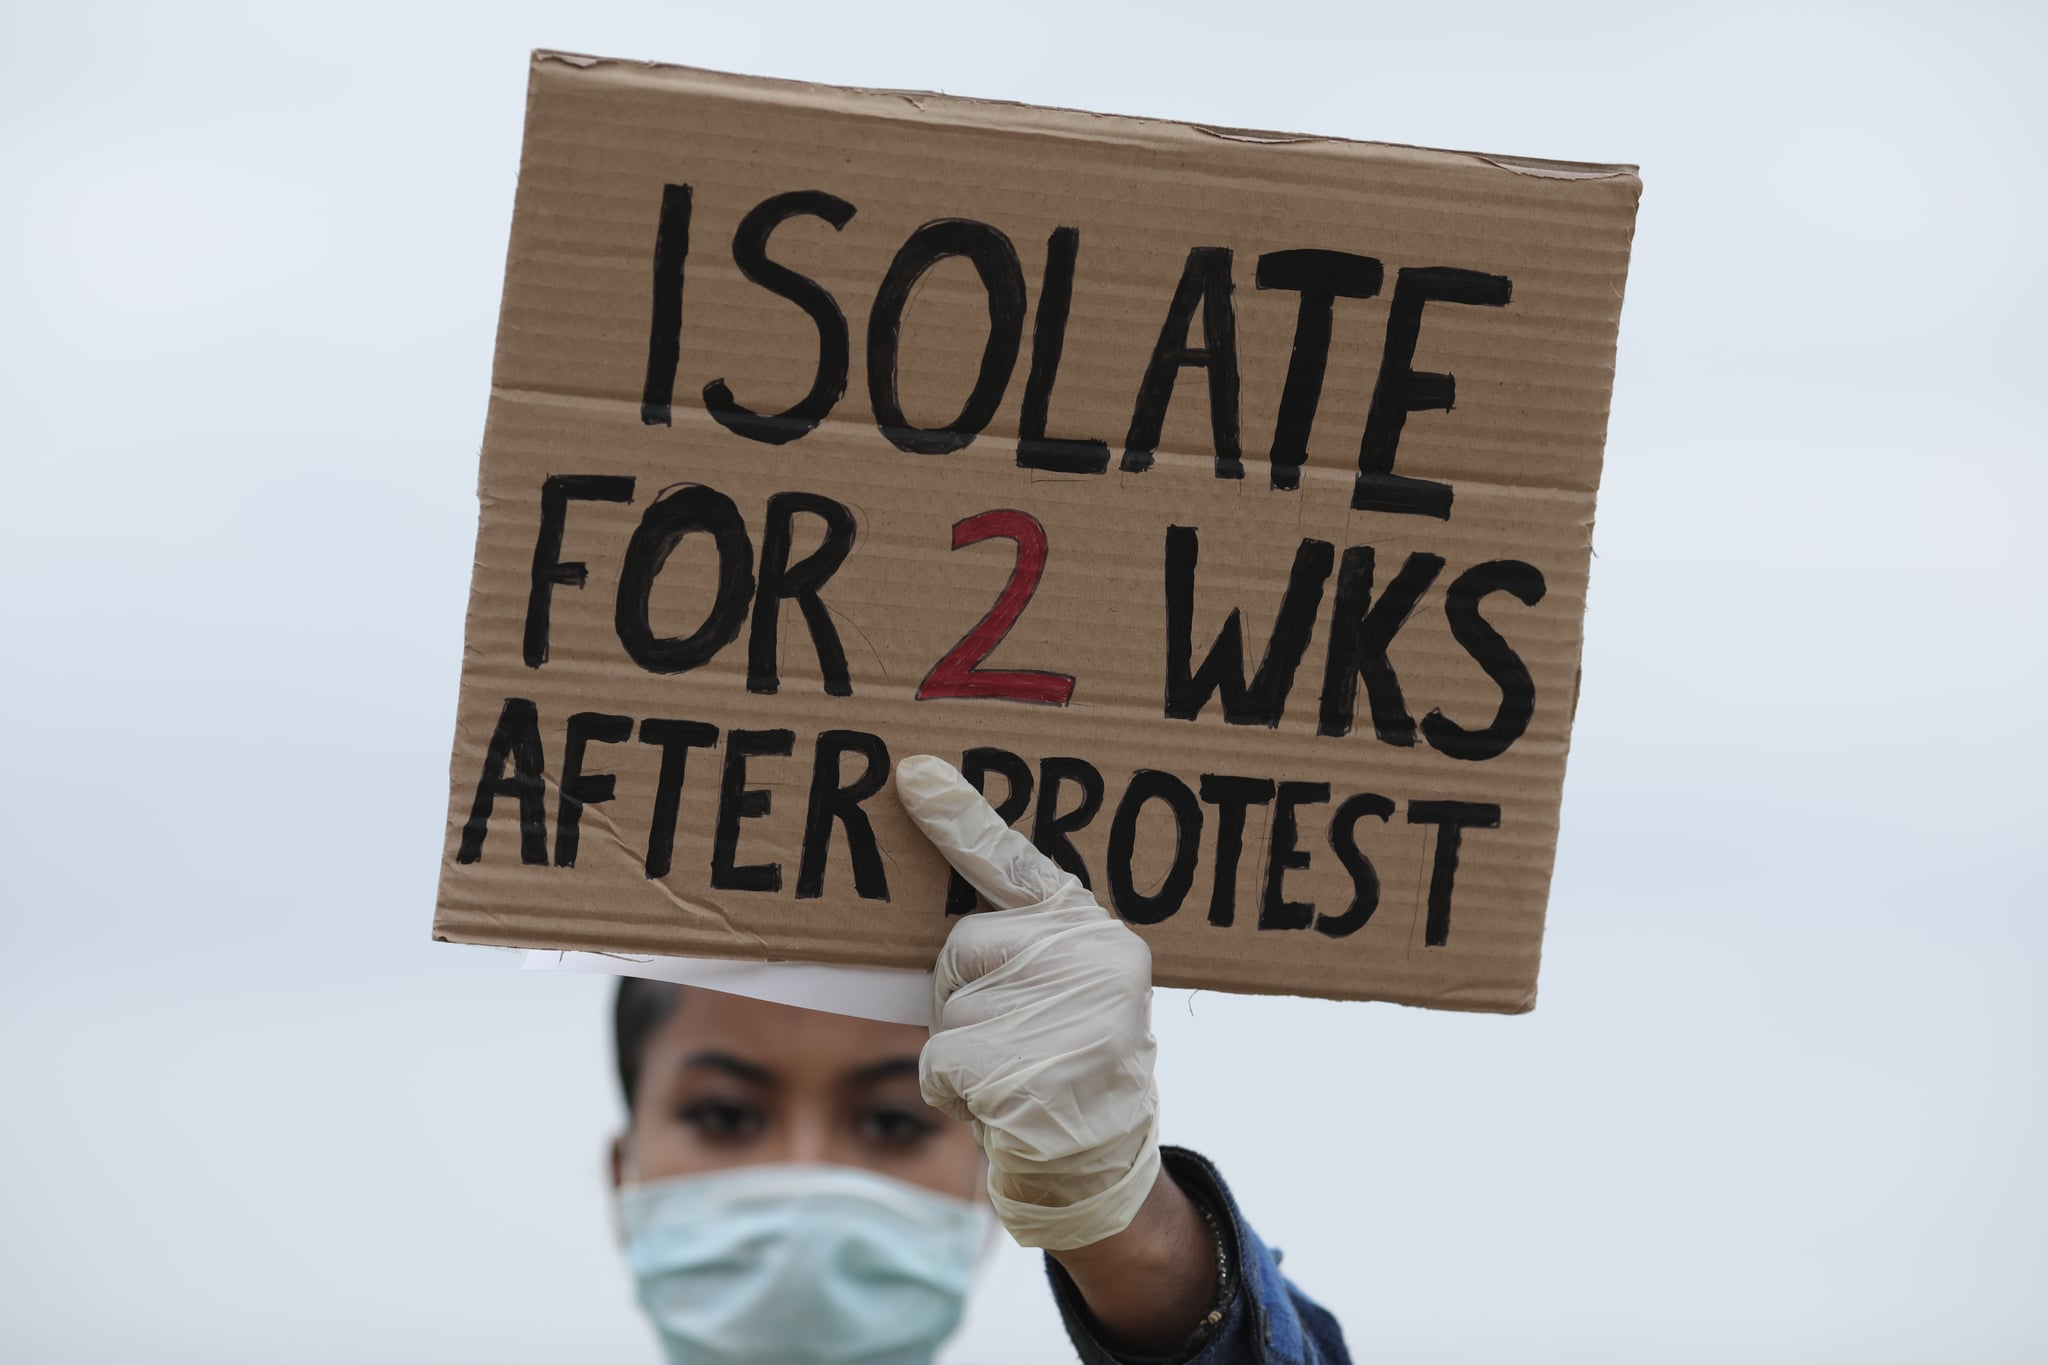 LONDON, ENGLAND - JUNE 03: A protester wearing a face mask holds up a sign saying 'Isolate for 2 weeks after protest' during a Black Lives Matter protest in Hyde Park on June 3, 2020 in London, United Kingdom. The death of an African-American man, George Floyd, while in the custody of Minneapolis police has sparked protests across the United States, as well as demonstrations of solidarity in many countries around the world. (Photo by Dan Kitwood/Getty Images)